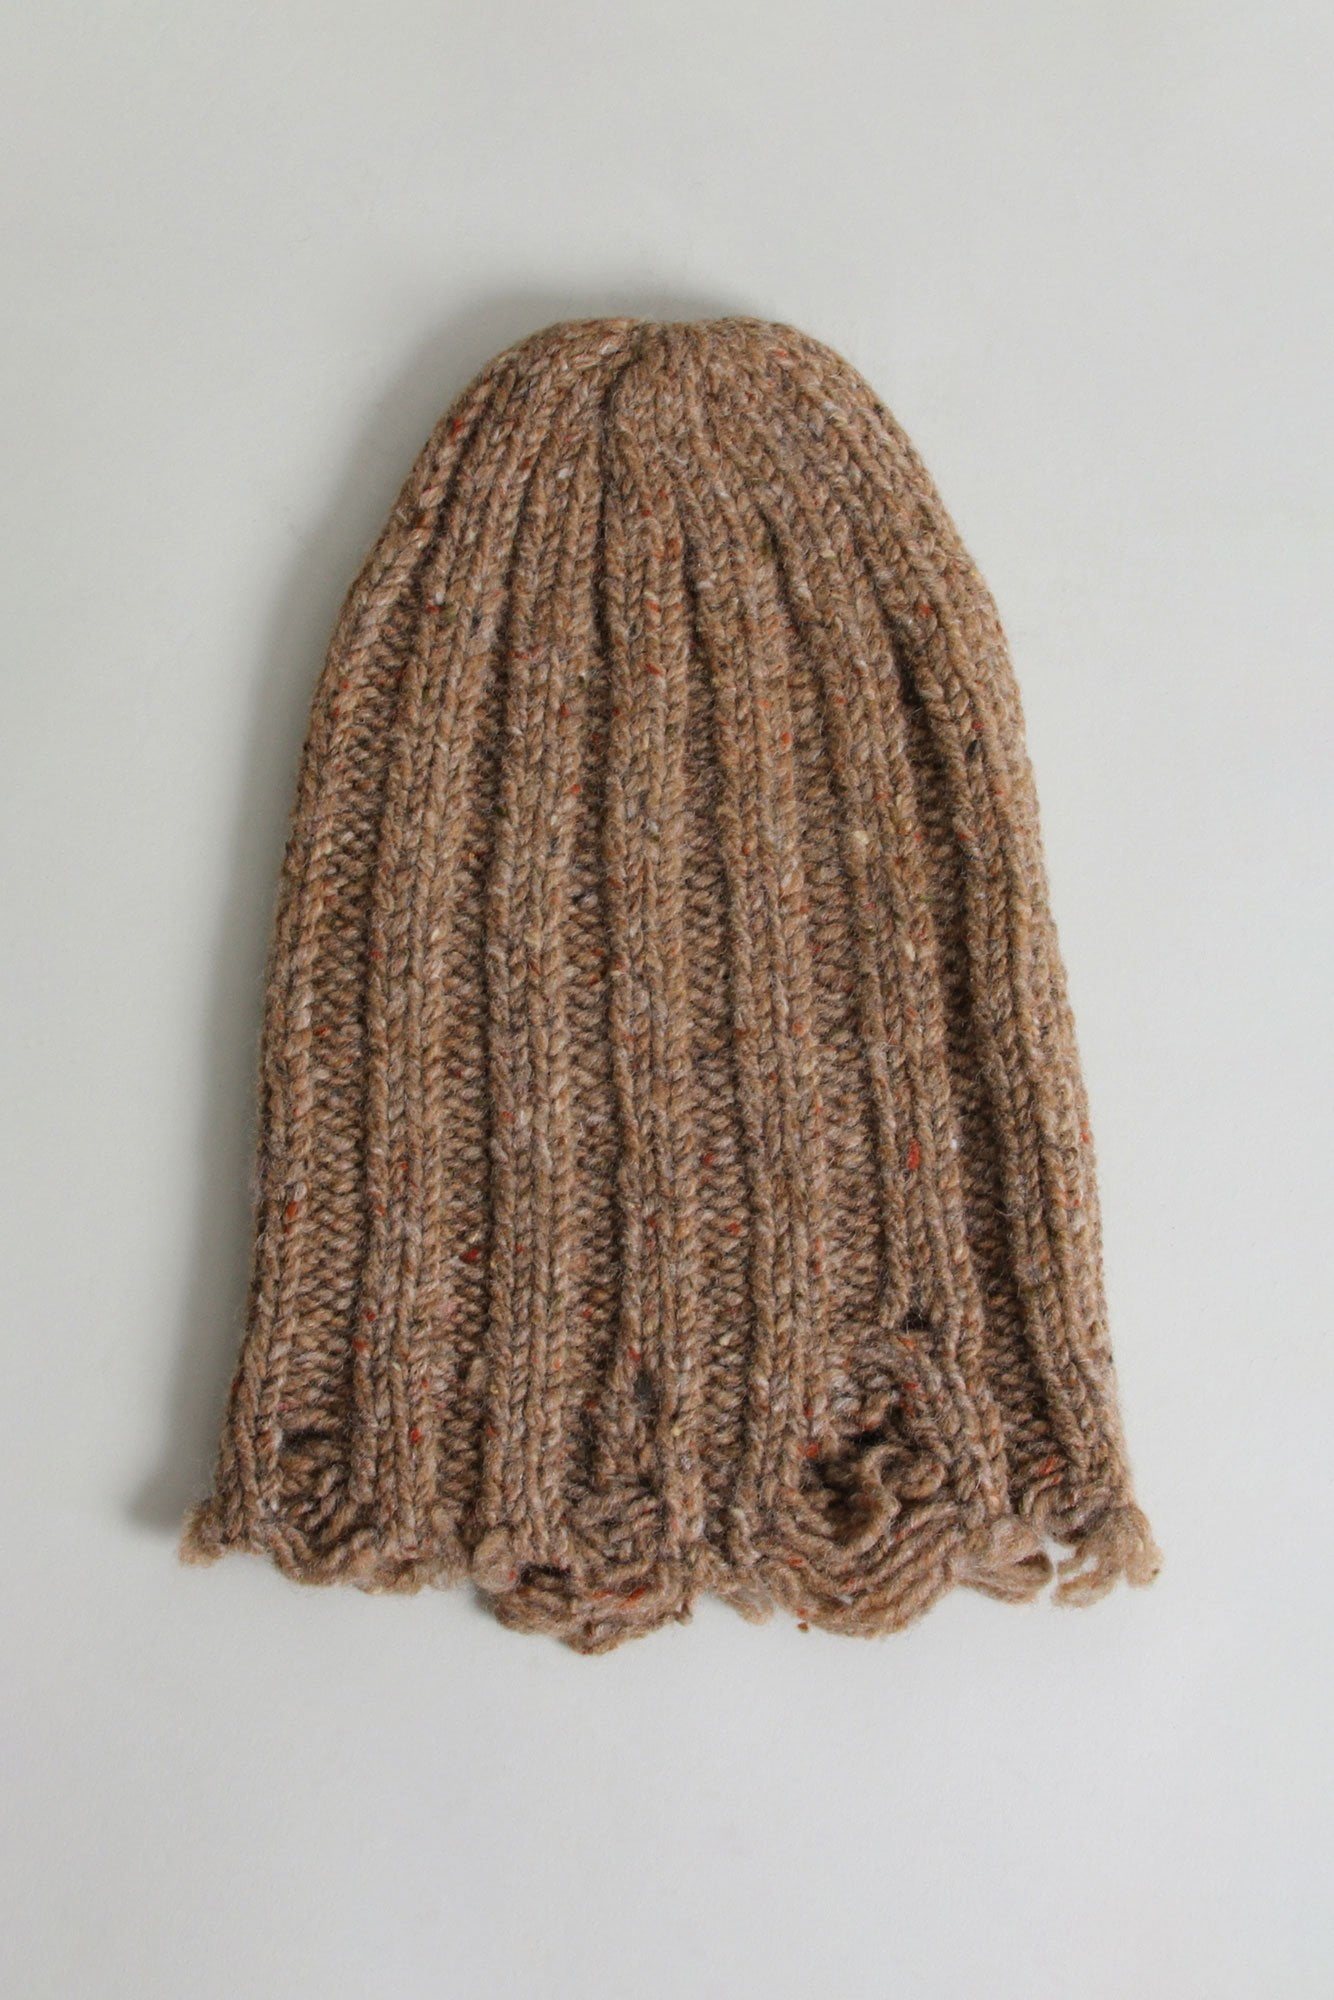 Distressed Chunky Hat - Tan